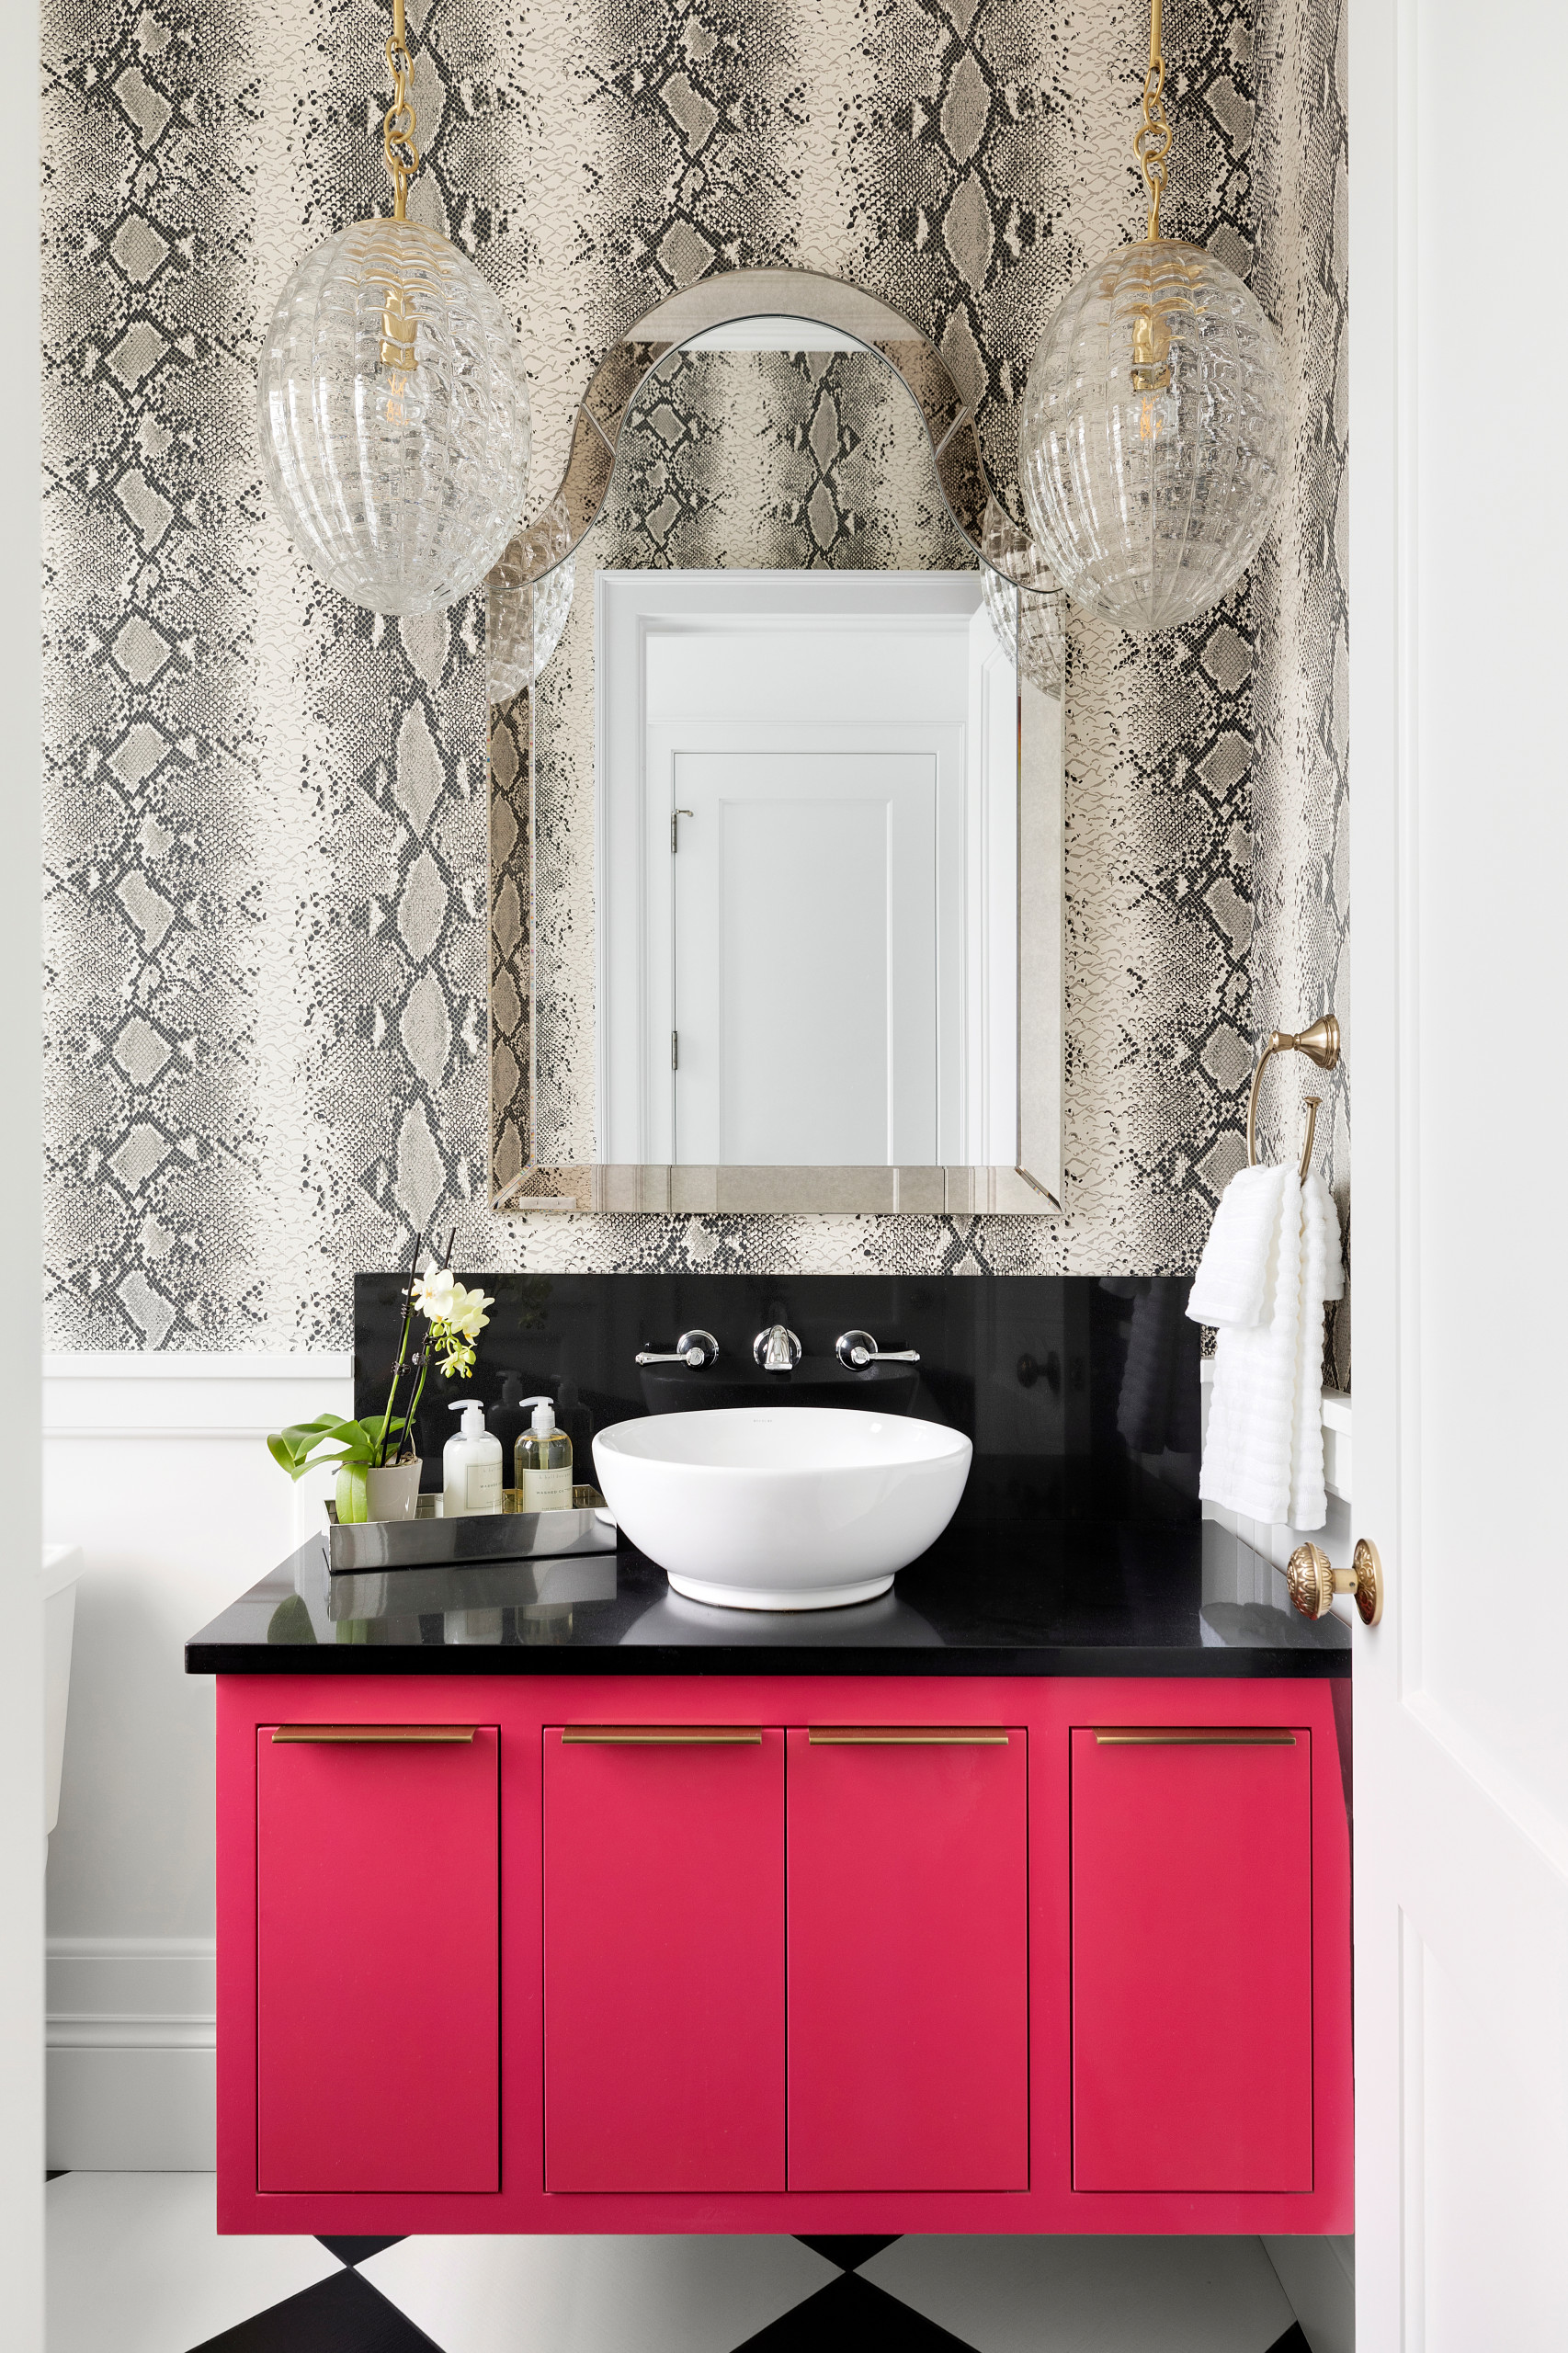 75 Beautiful Pink Bathroom Pictures Ideas February 2021 Houzz